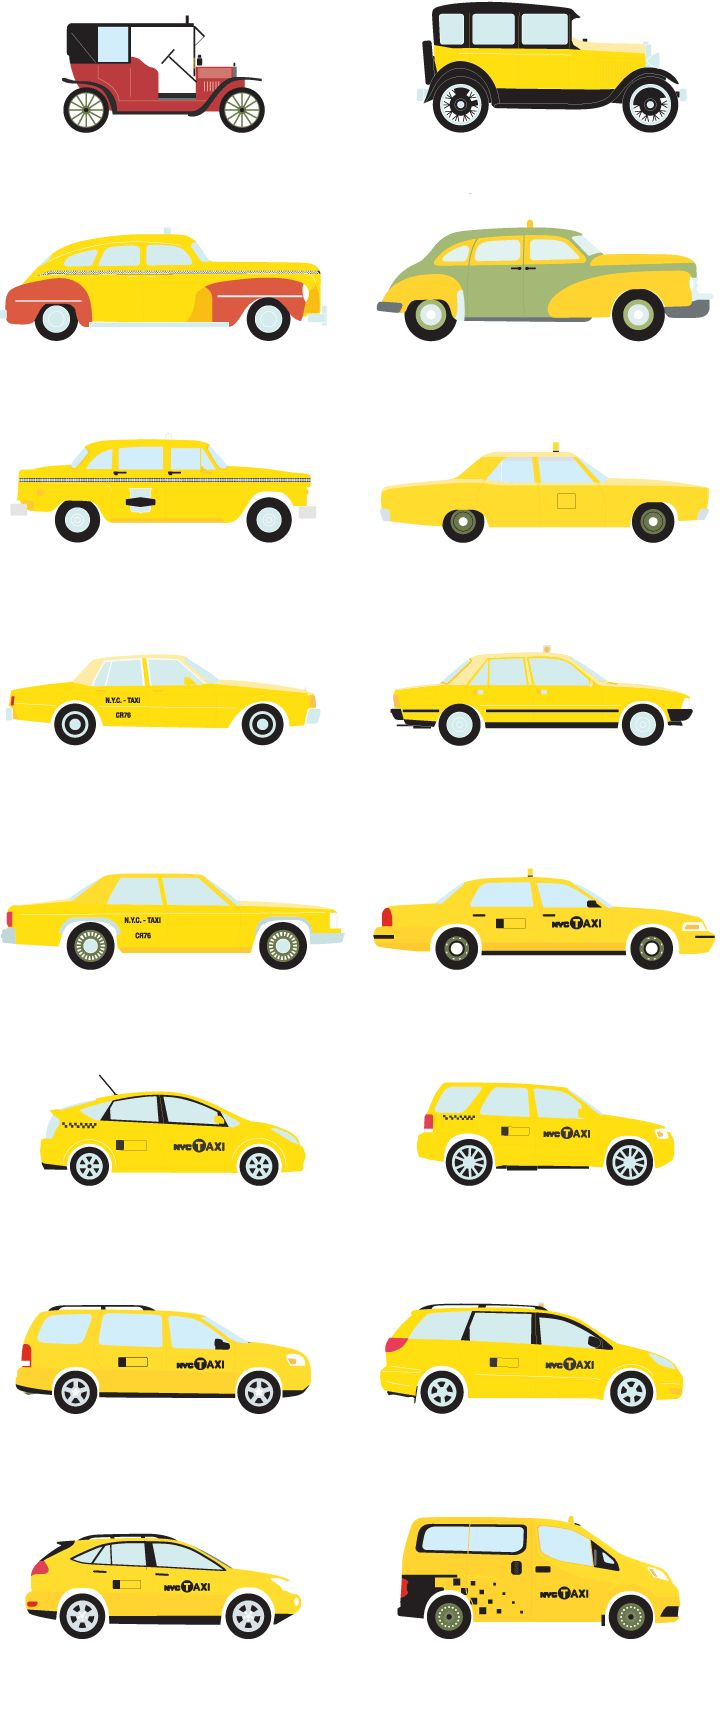 Taxis of Yesterday and Today - The New York Times